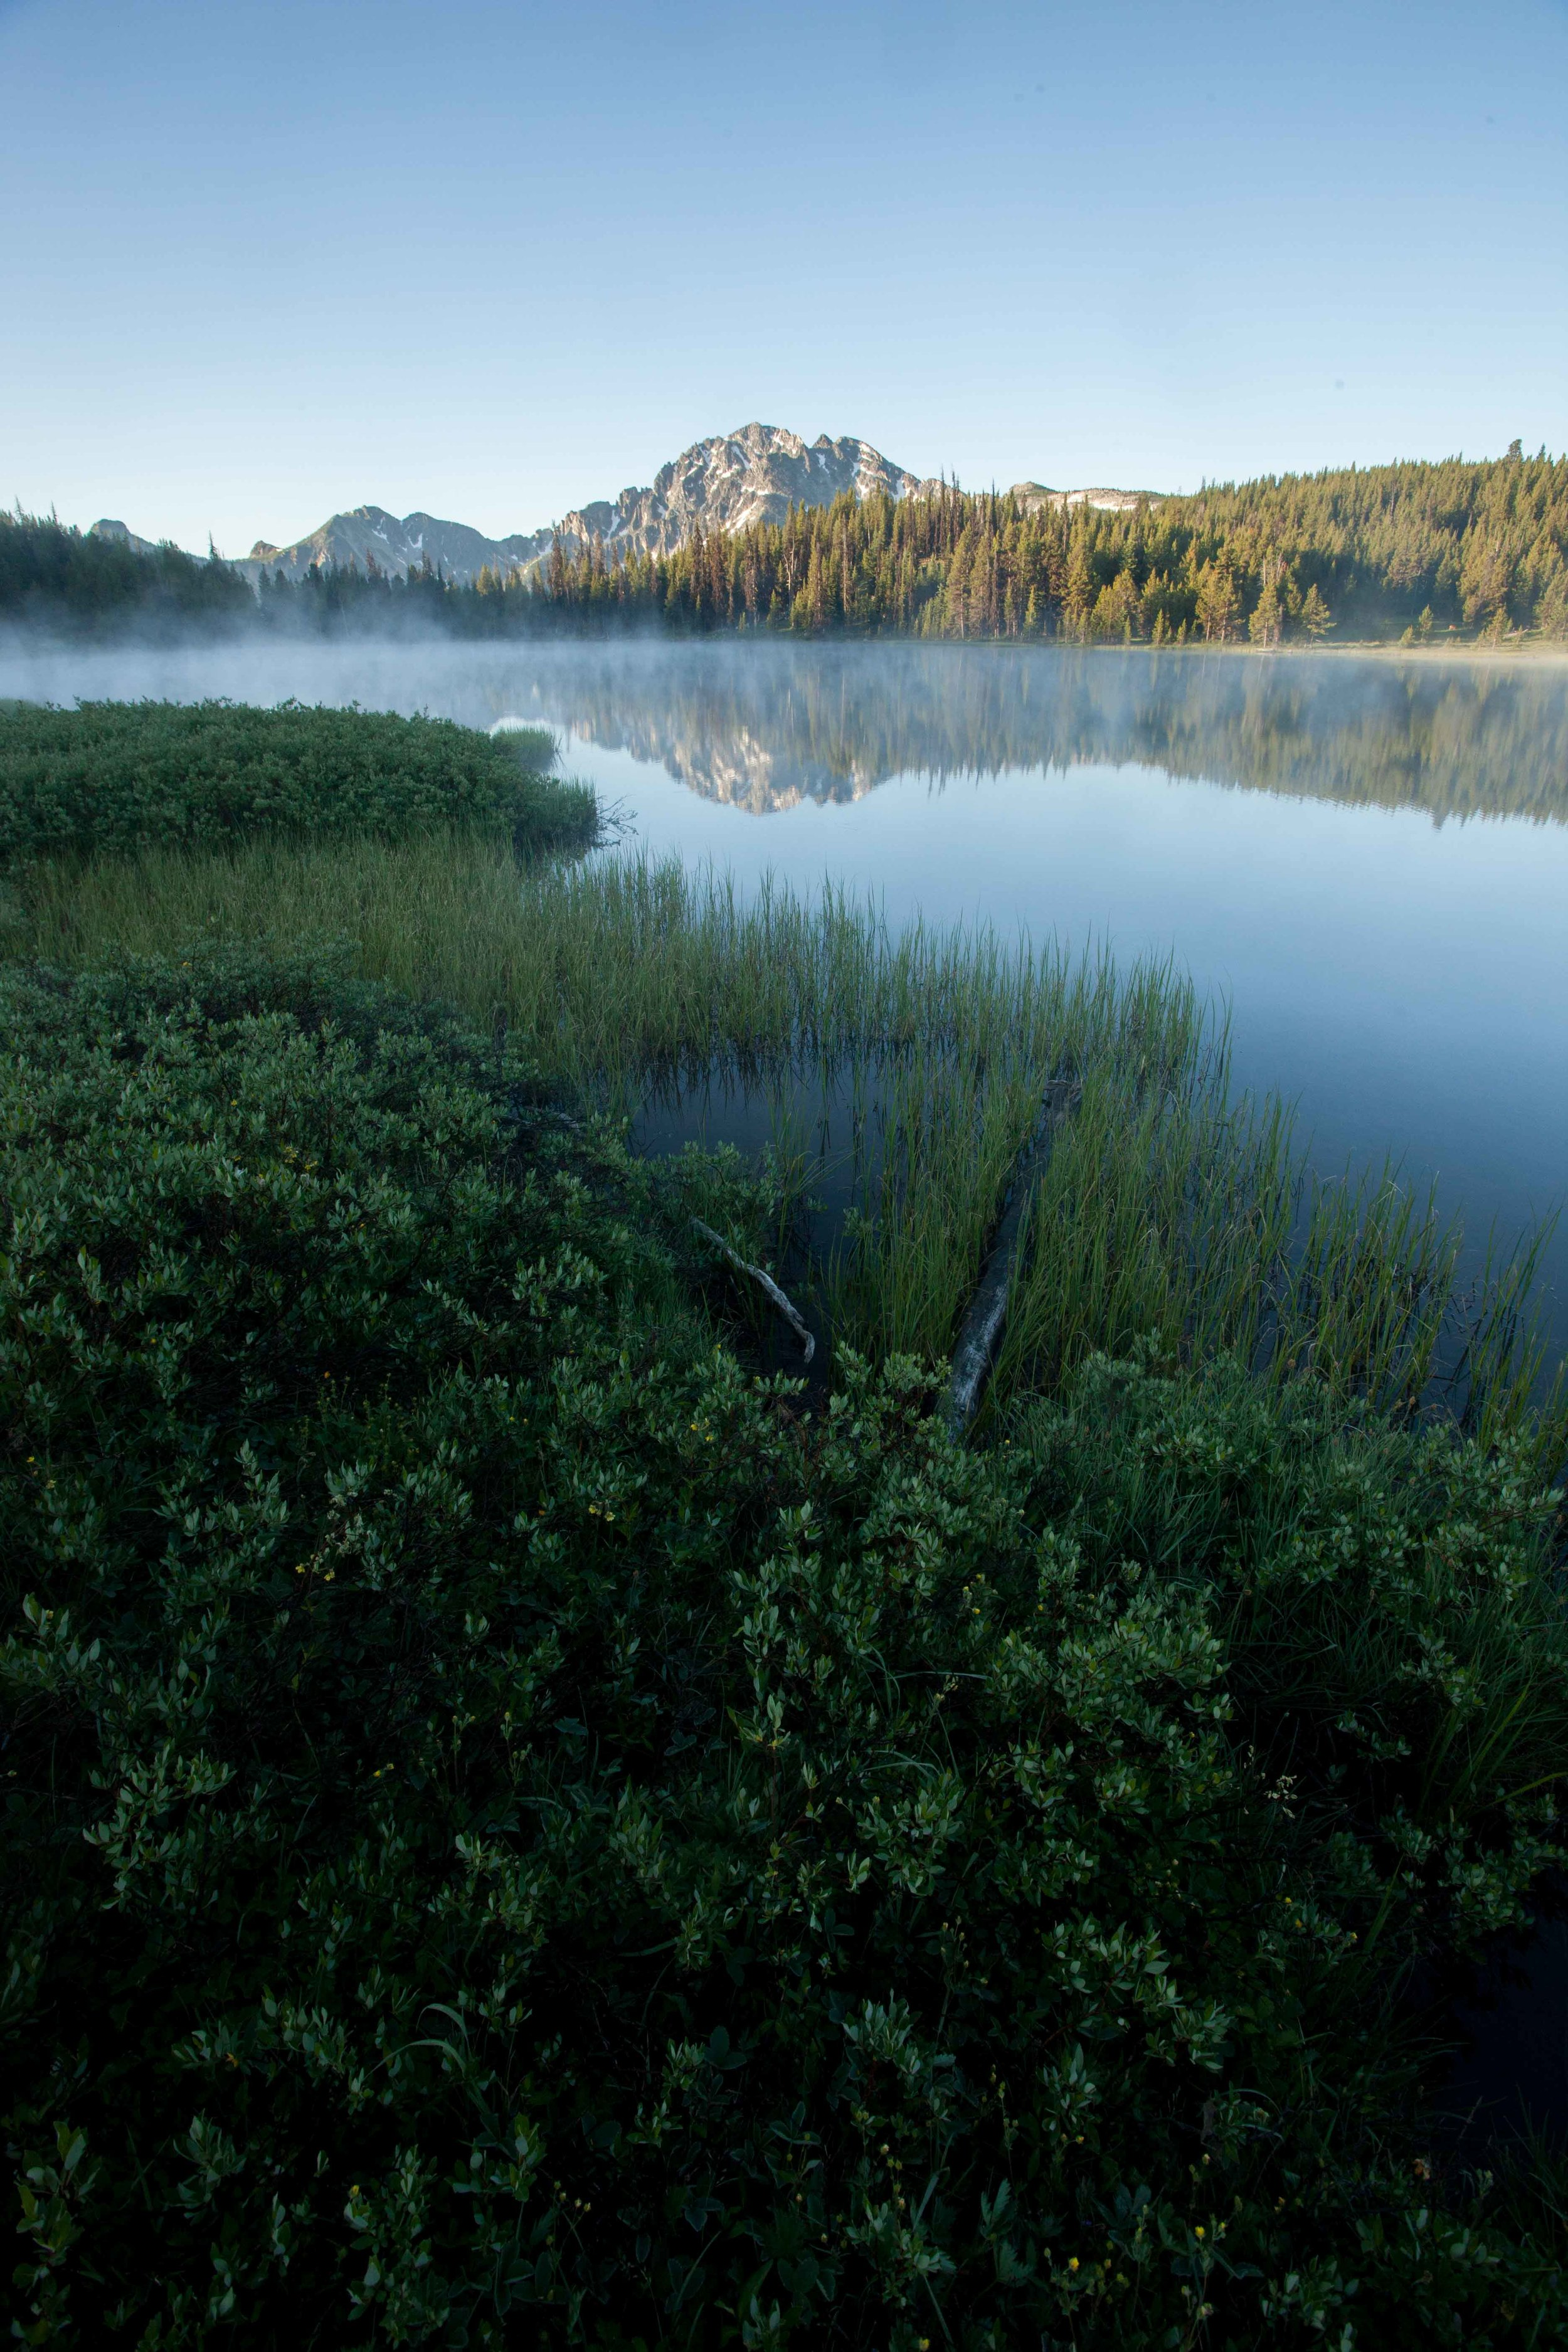 Remmel Lake is worth visiting - and I want to climb Remmel Mountain next time I'm in the area